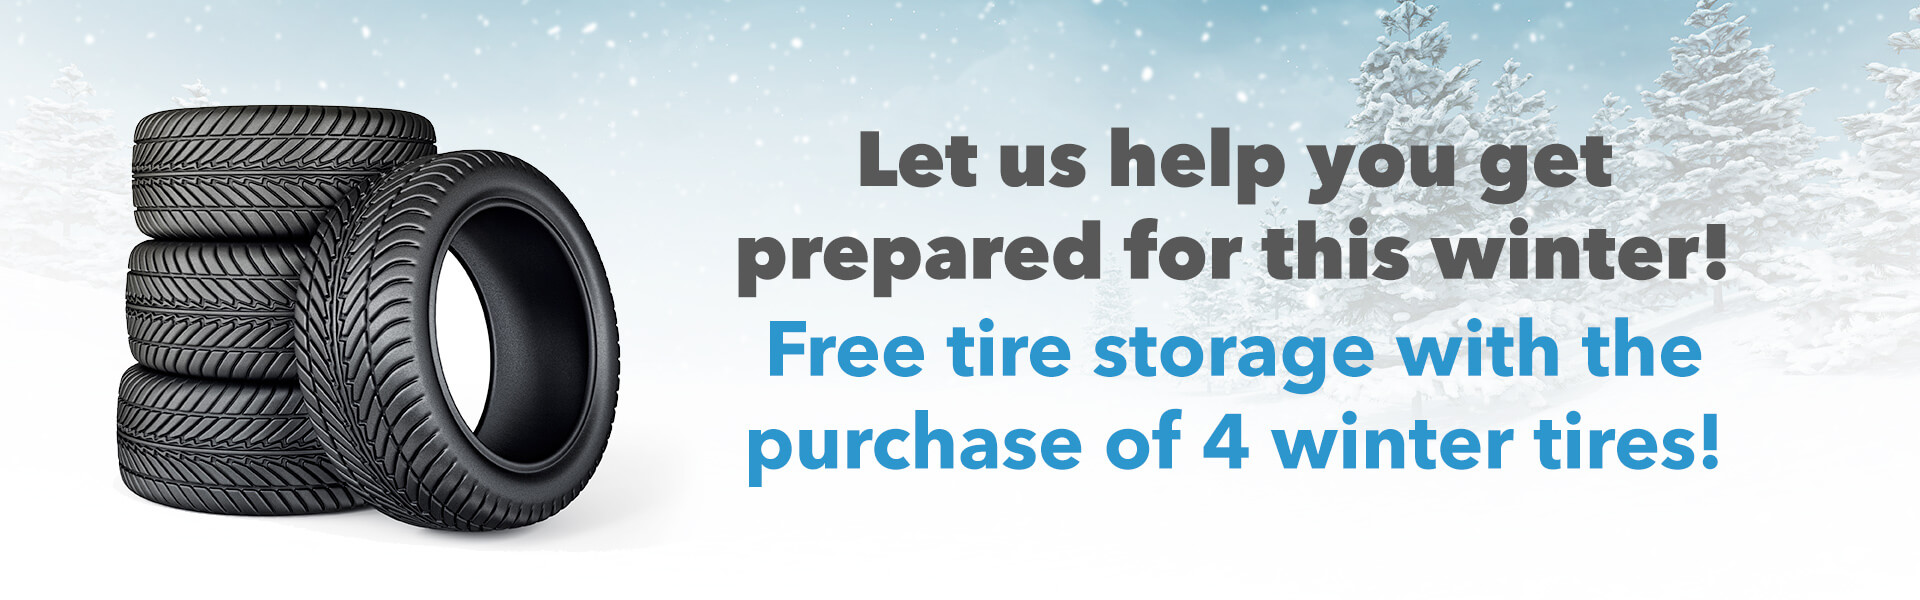 Let us help you get prepared for this winter! Free tire storage with the purchase of 4 winter tires!